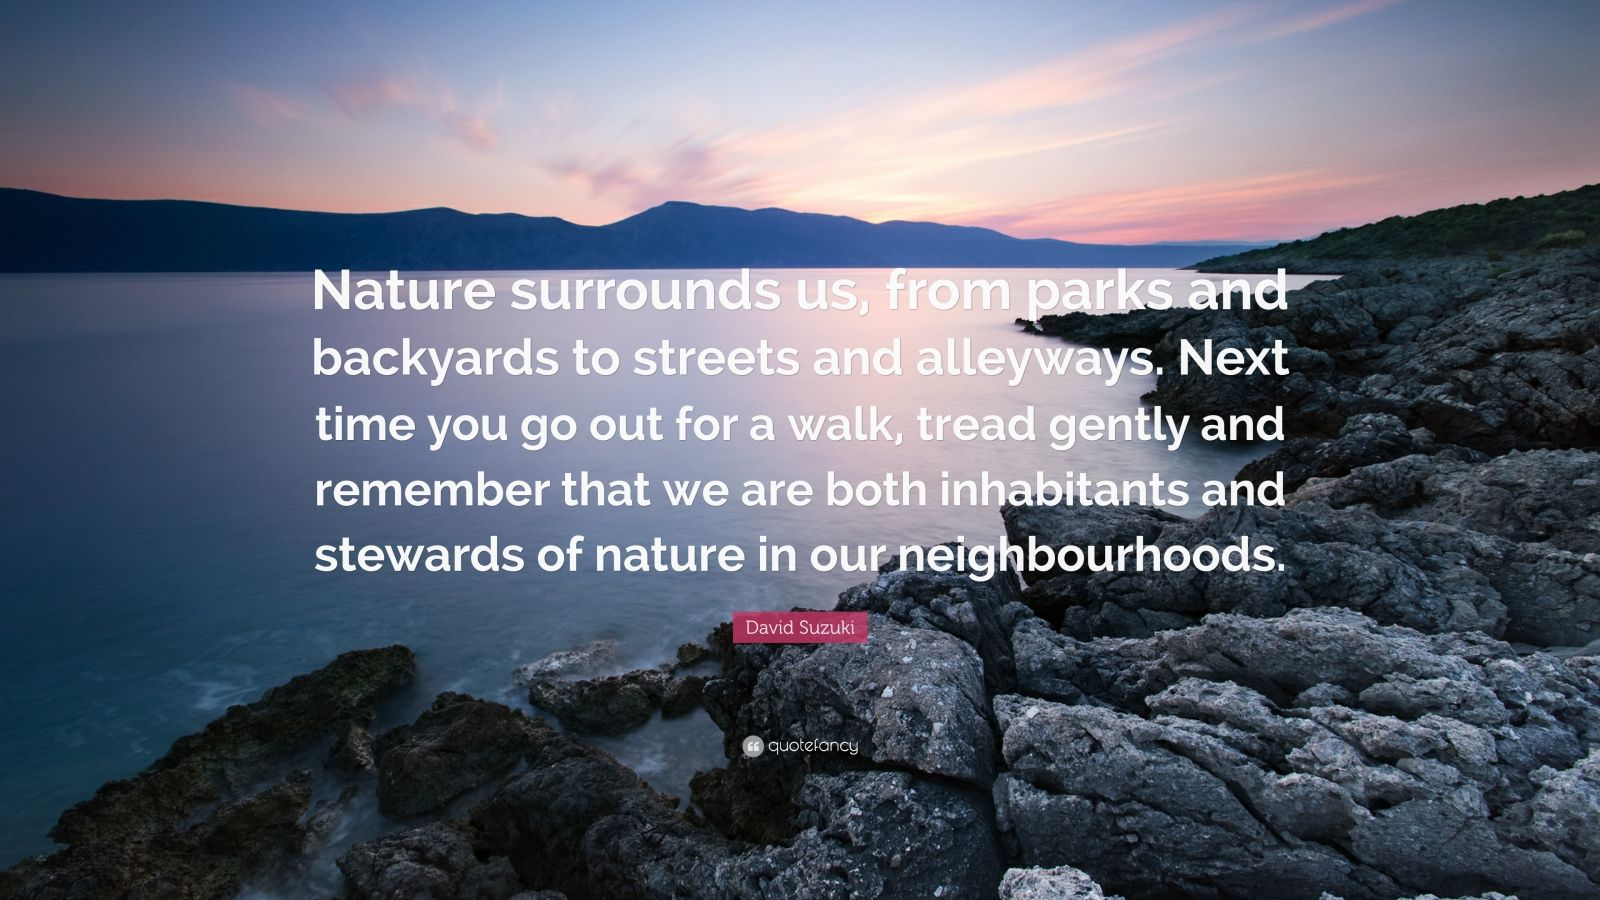 "David Suzuki Quote: ""Nature surrounds us, from parks and backyards to streets and alleyways. Next time you go out for a walk, tread gently and remember that we are both inhabitants and stewards of nature in our neighbourhoods."""